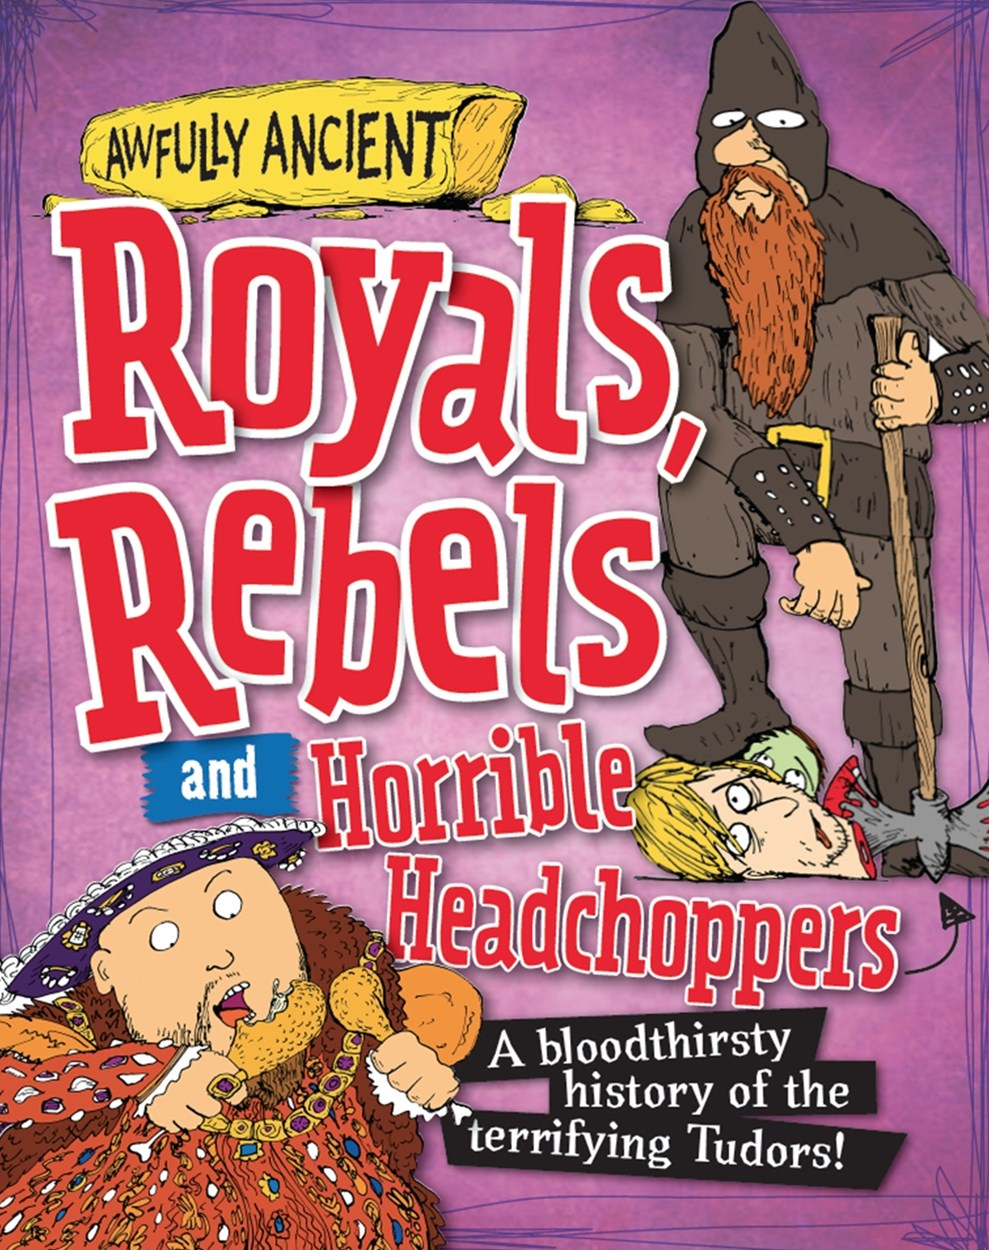 Awfully Ancient: Royals, Rebels and Horrible Headchoppers